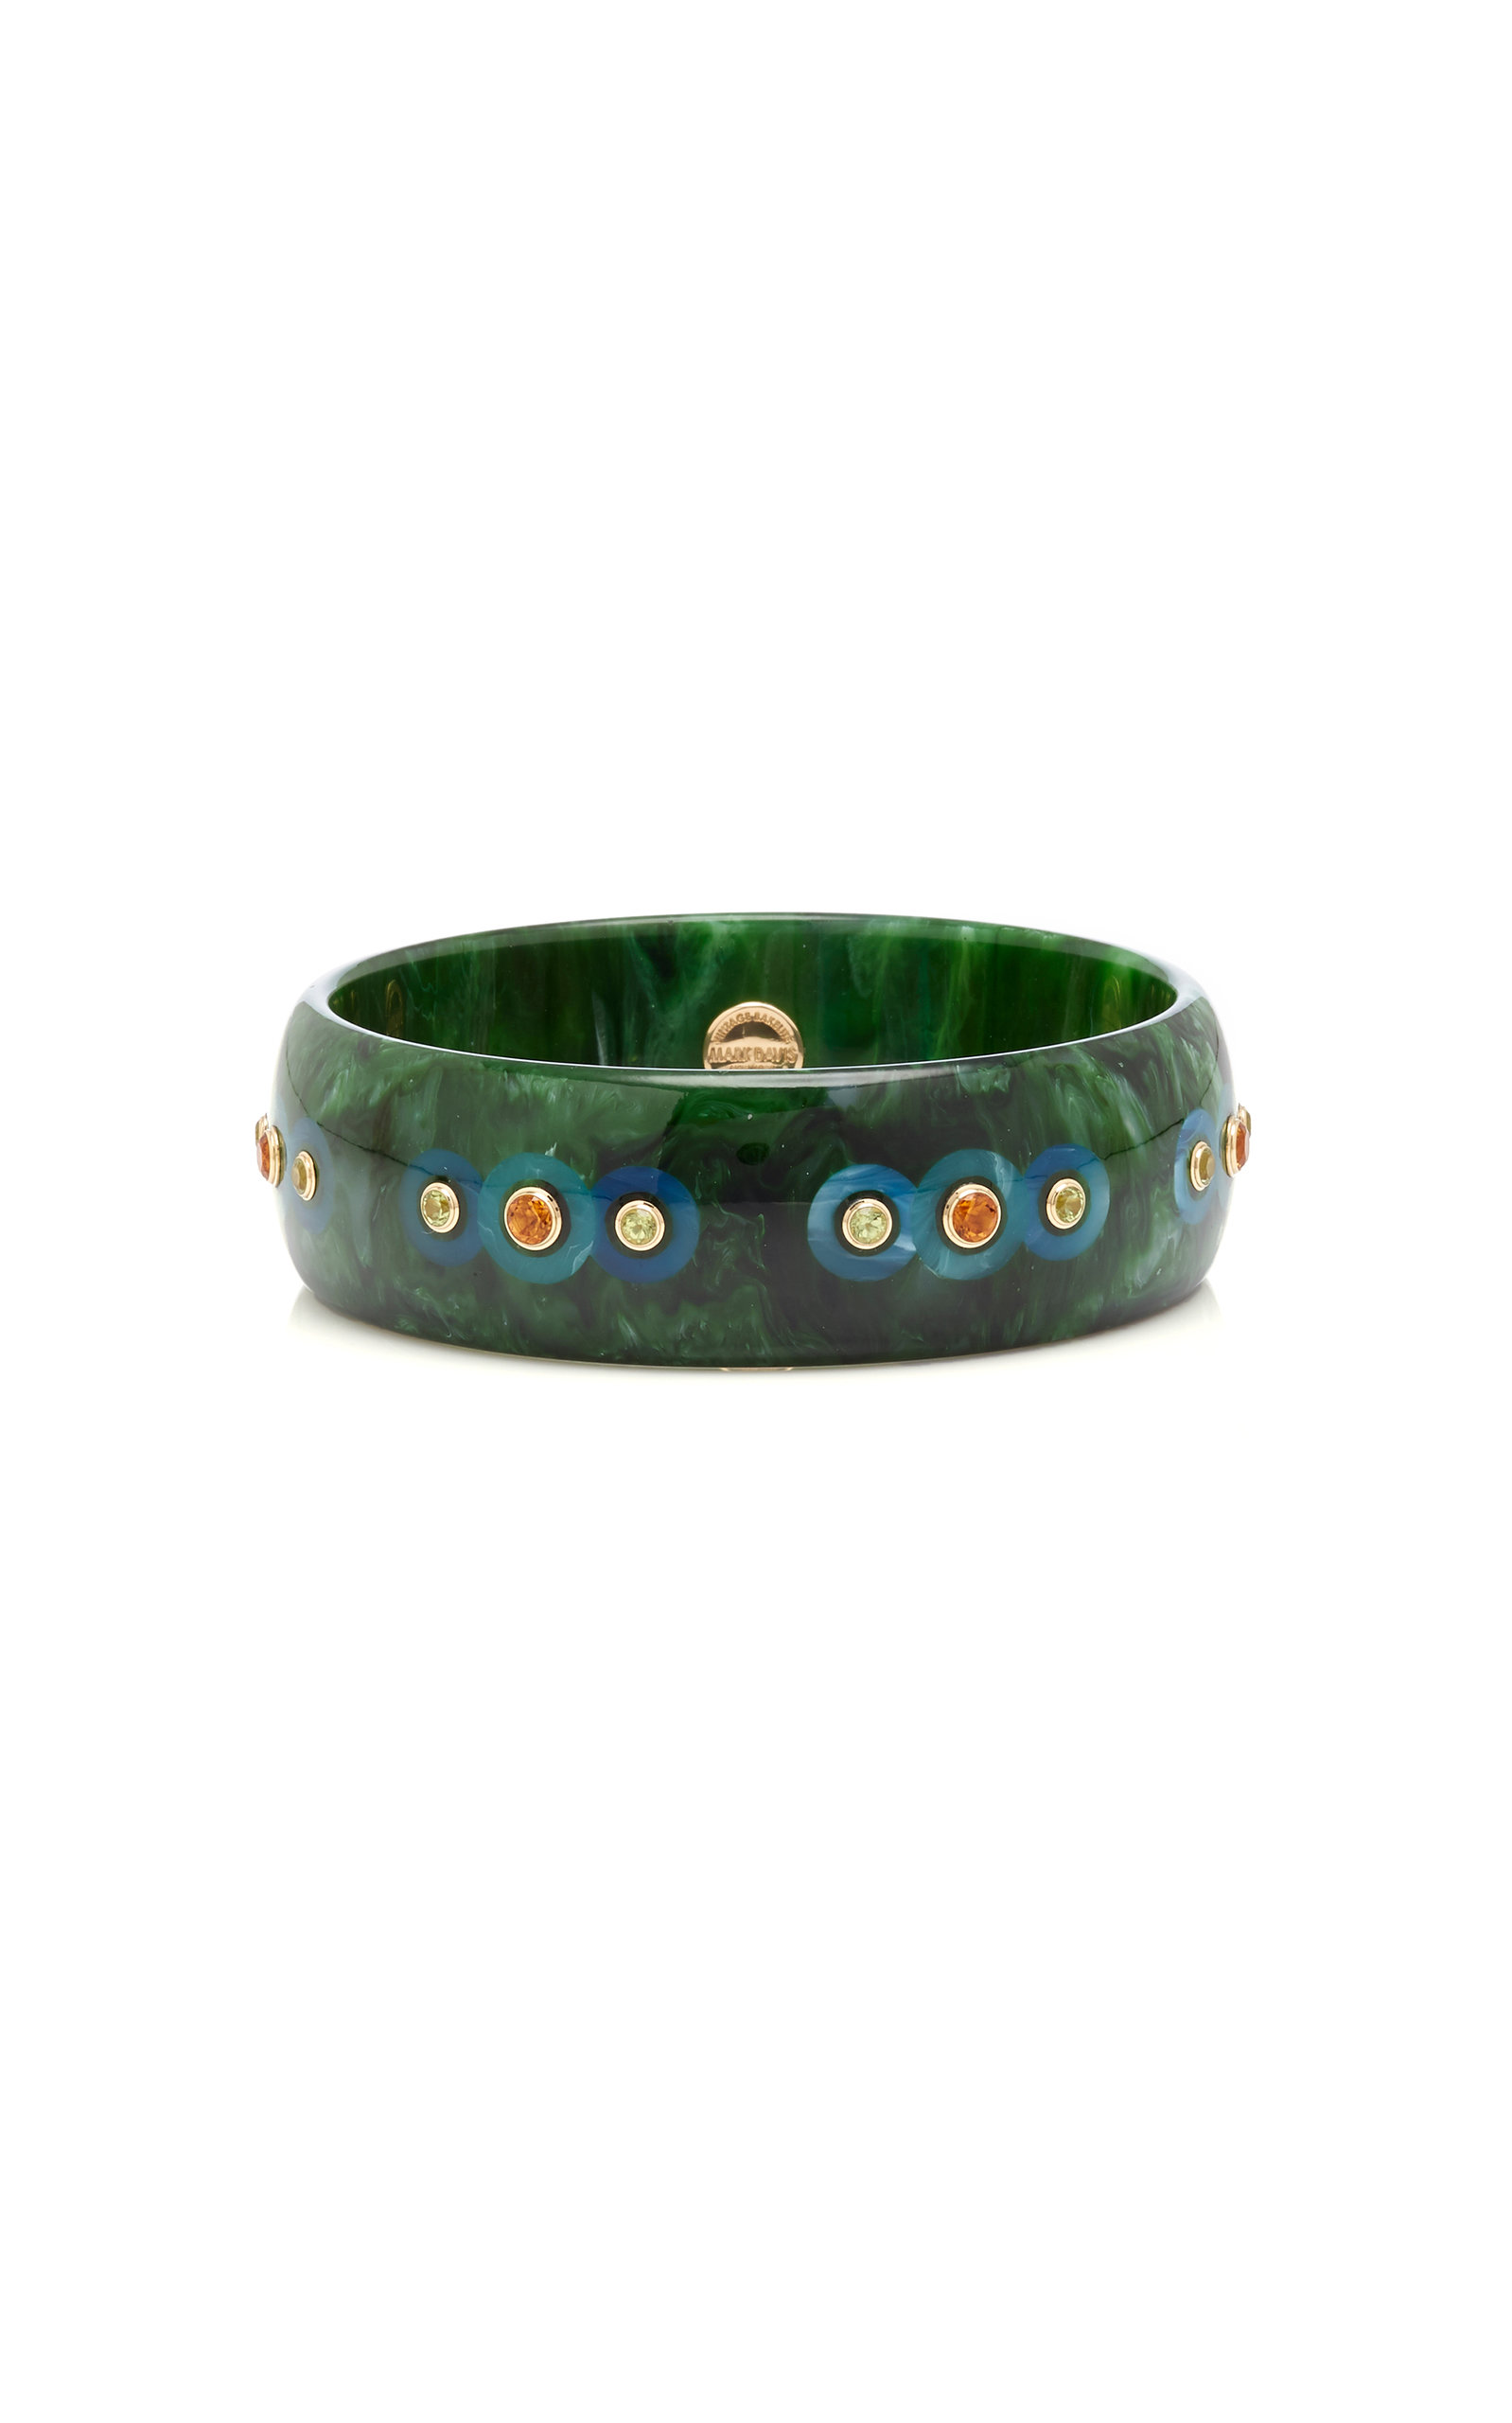 MARK DAVIS M'O EXCLUSIVE: ONE-OF-A-KIND GREEN WIDE CARLYLE BRACELET